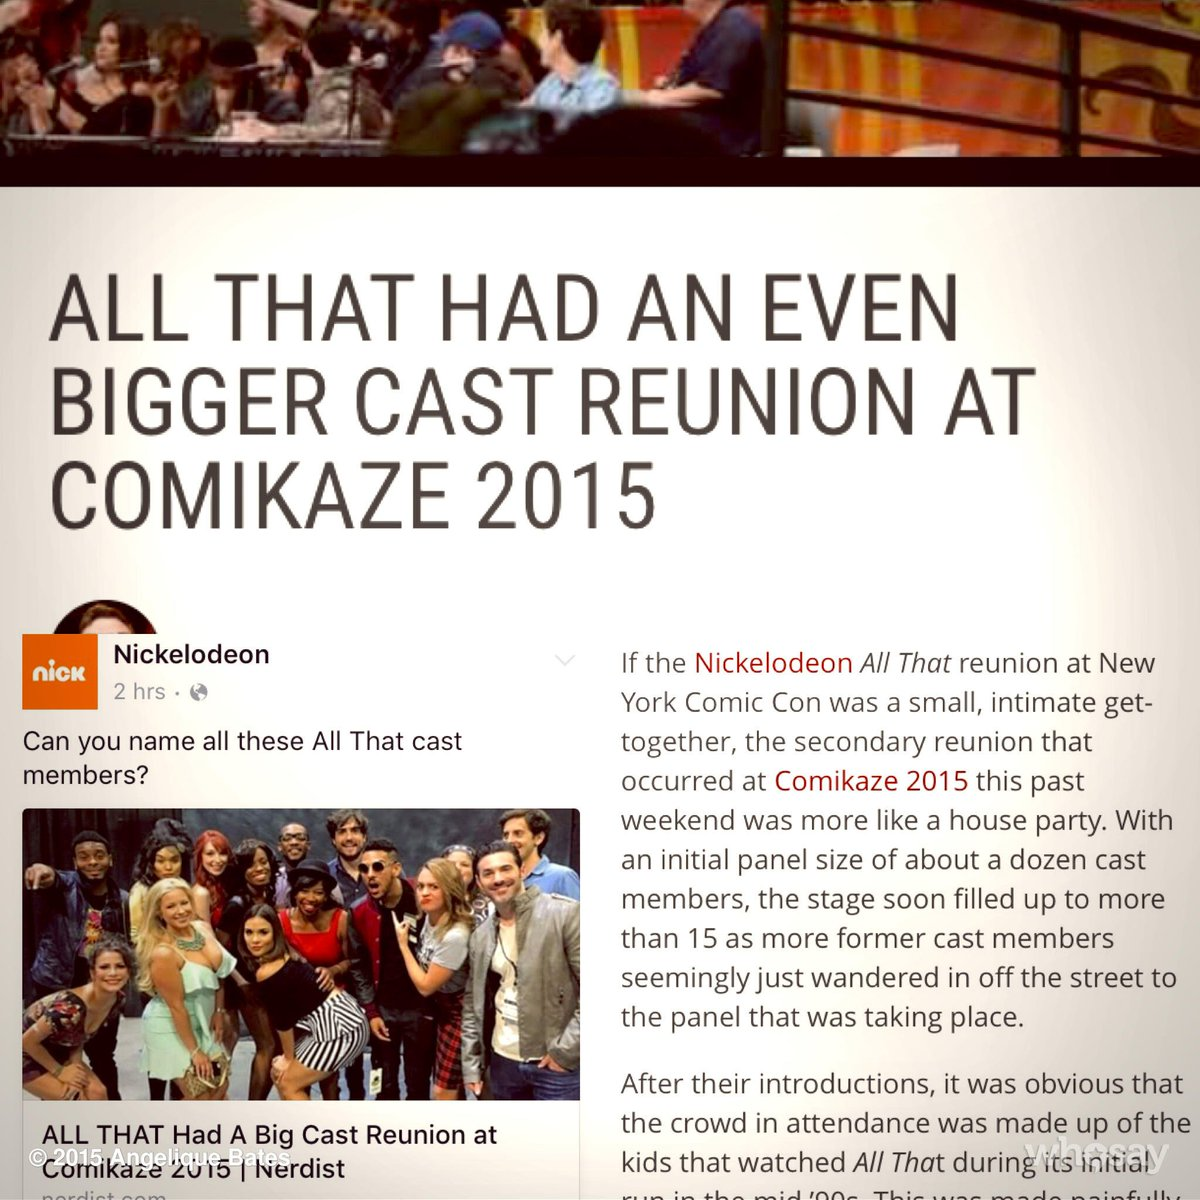 Congrats to @StanLeeComikaze for the biggest #AllThatReunion yet. #Comikaze15 #90sAreAllThat @NickelodeonTV https://t.co/54Ml4OFMbJ